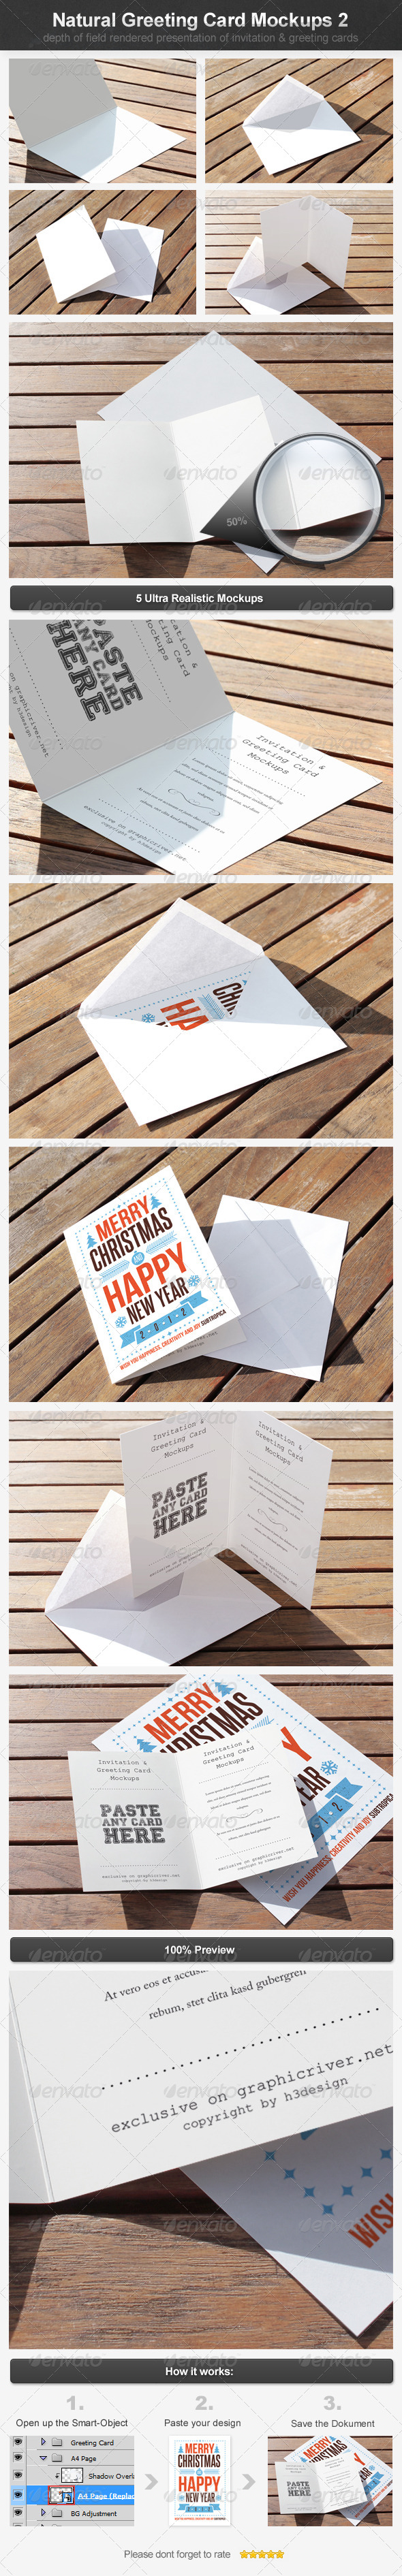 Natural Greeting Card Mockups 2 - Print Product Mock-Ups